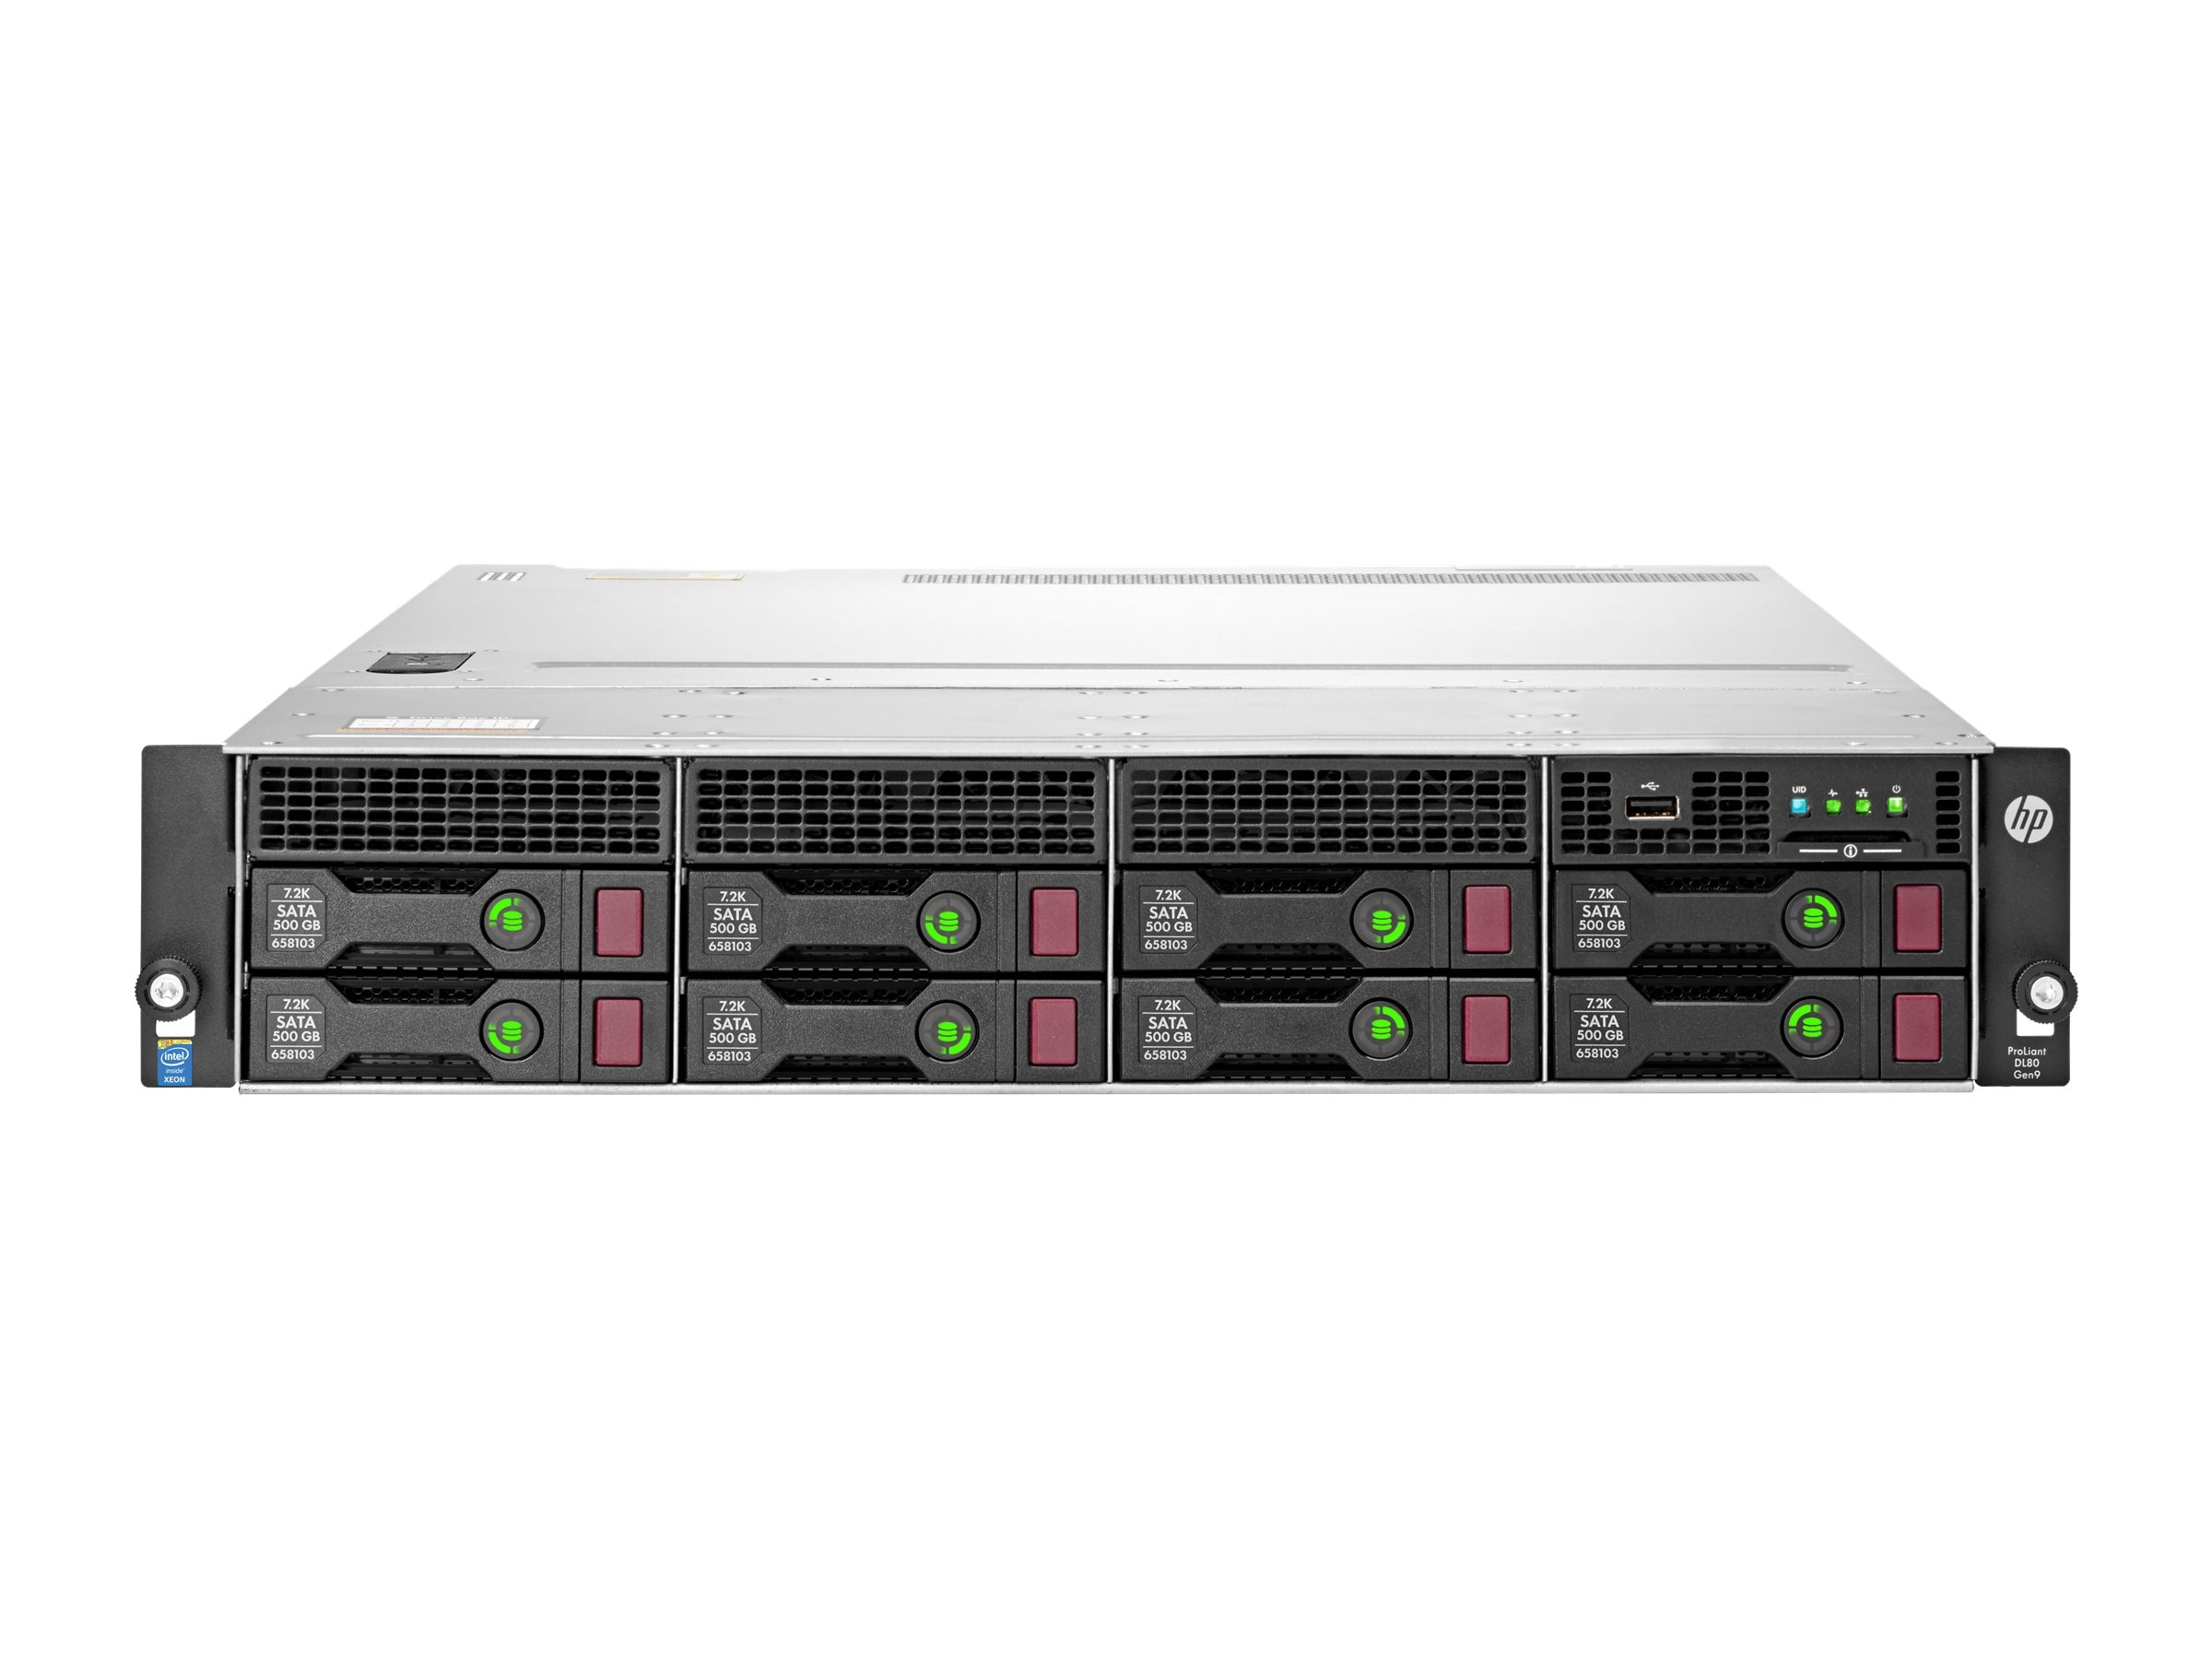 HPE ProLiant DL80 Gen9 Intel 1.7GHz Xeon